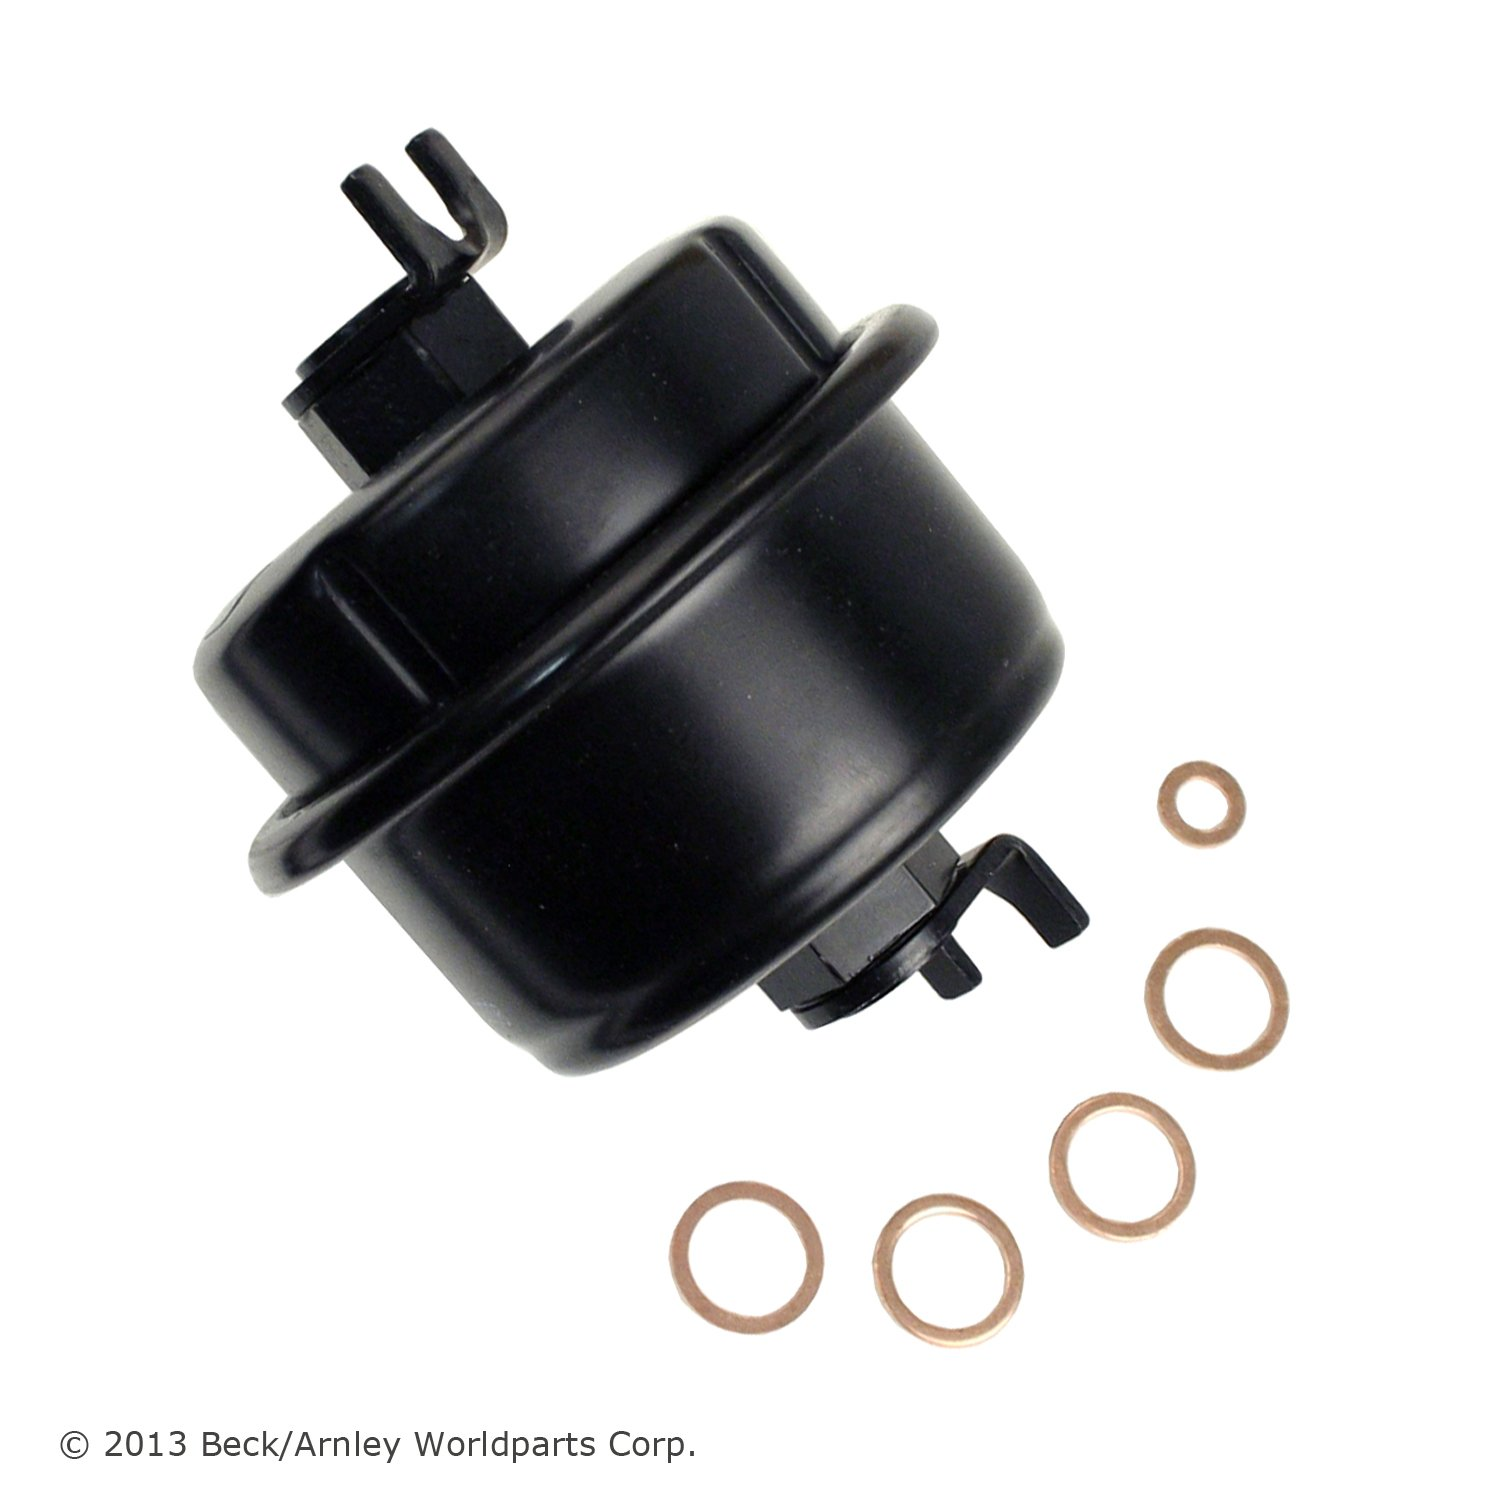 hight resolution of 1987 honda civic fuel filter ba 043 0897